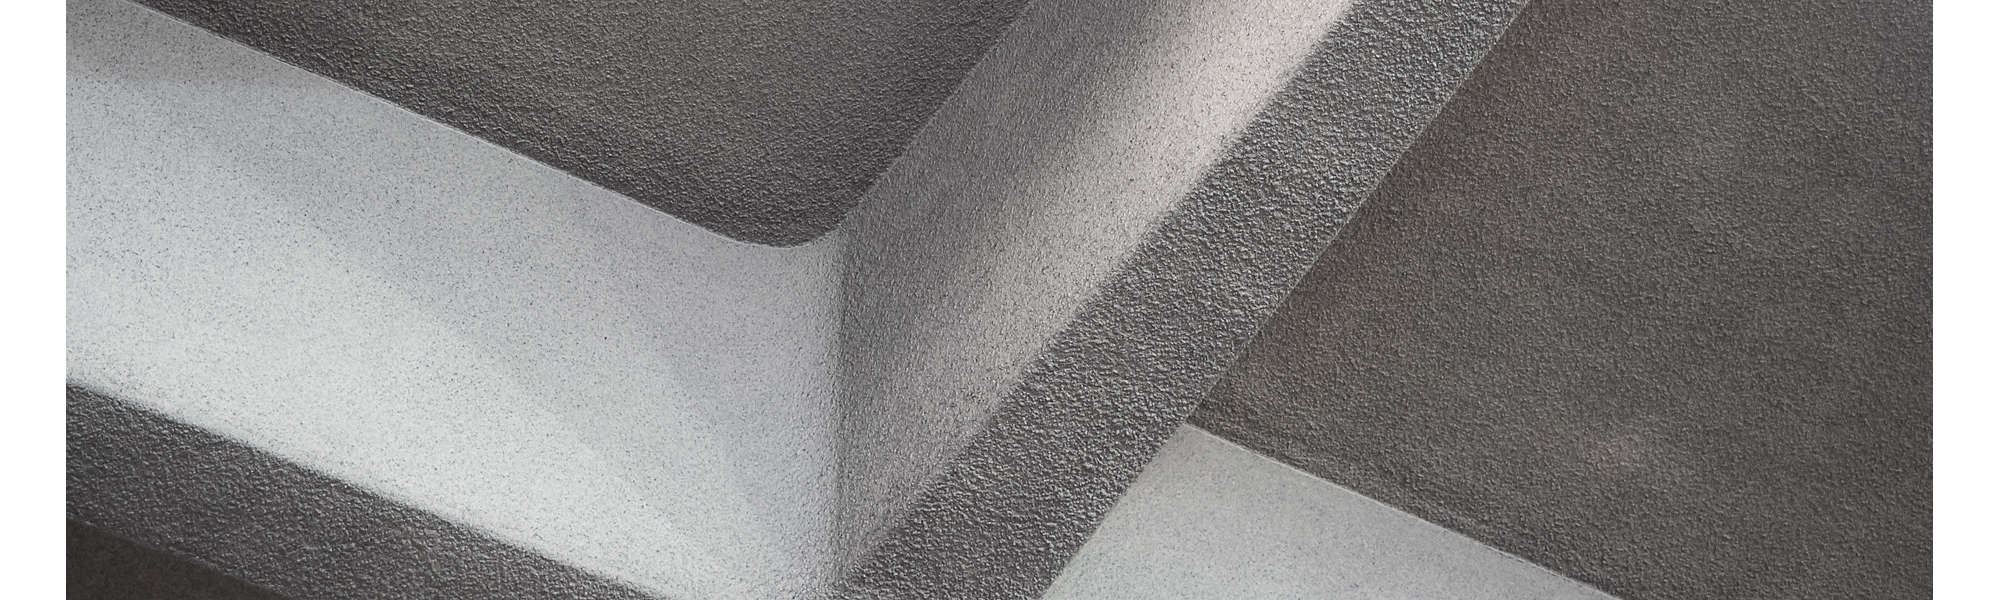 Low angle view of concrete cross on ceiling